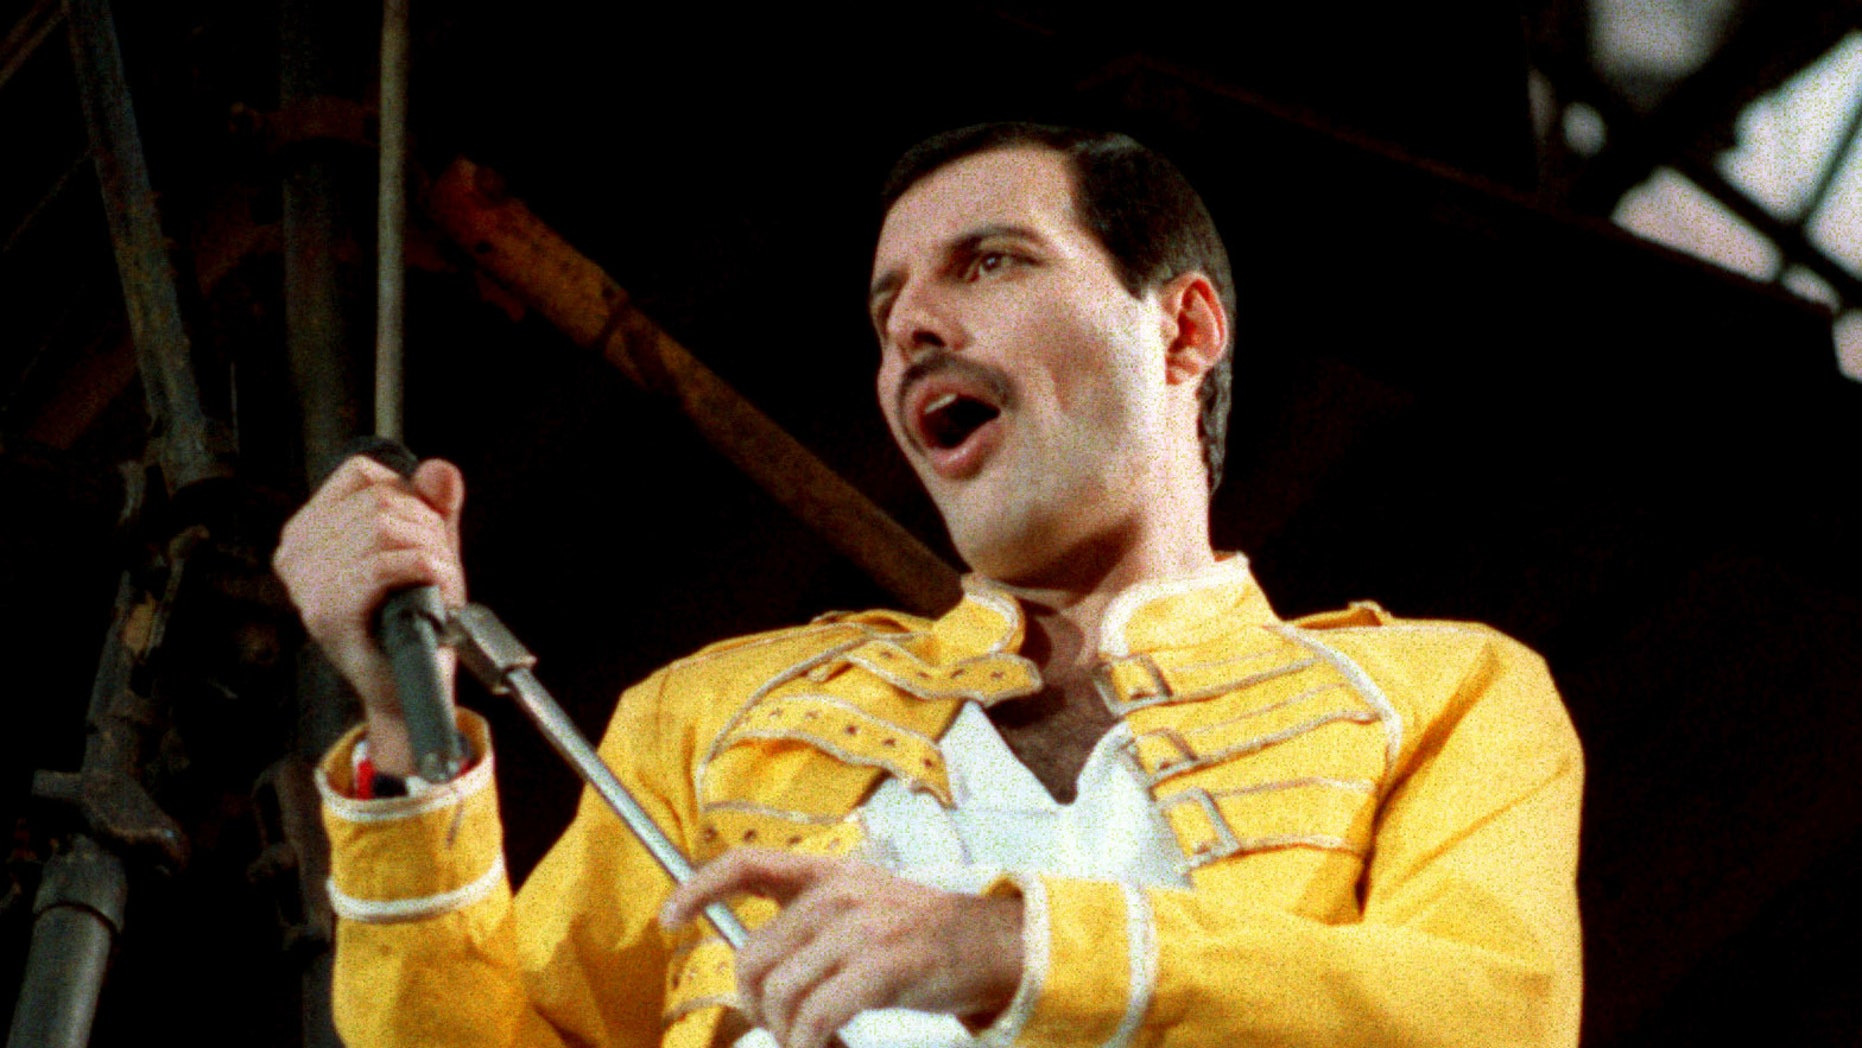 A biopic about Freddie Mercury titled 'Bohemiam Rhapsody' dropped its first trailer.